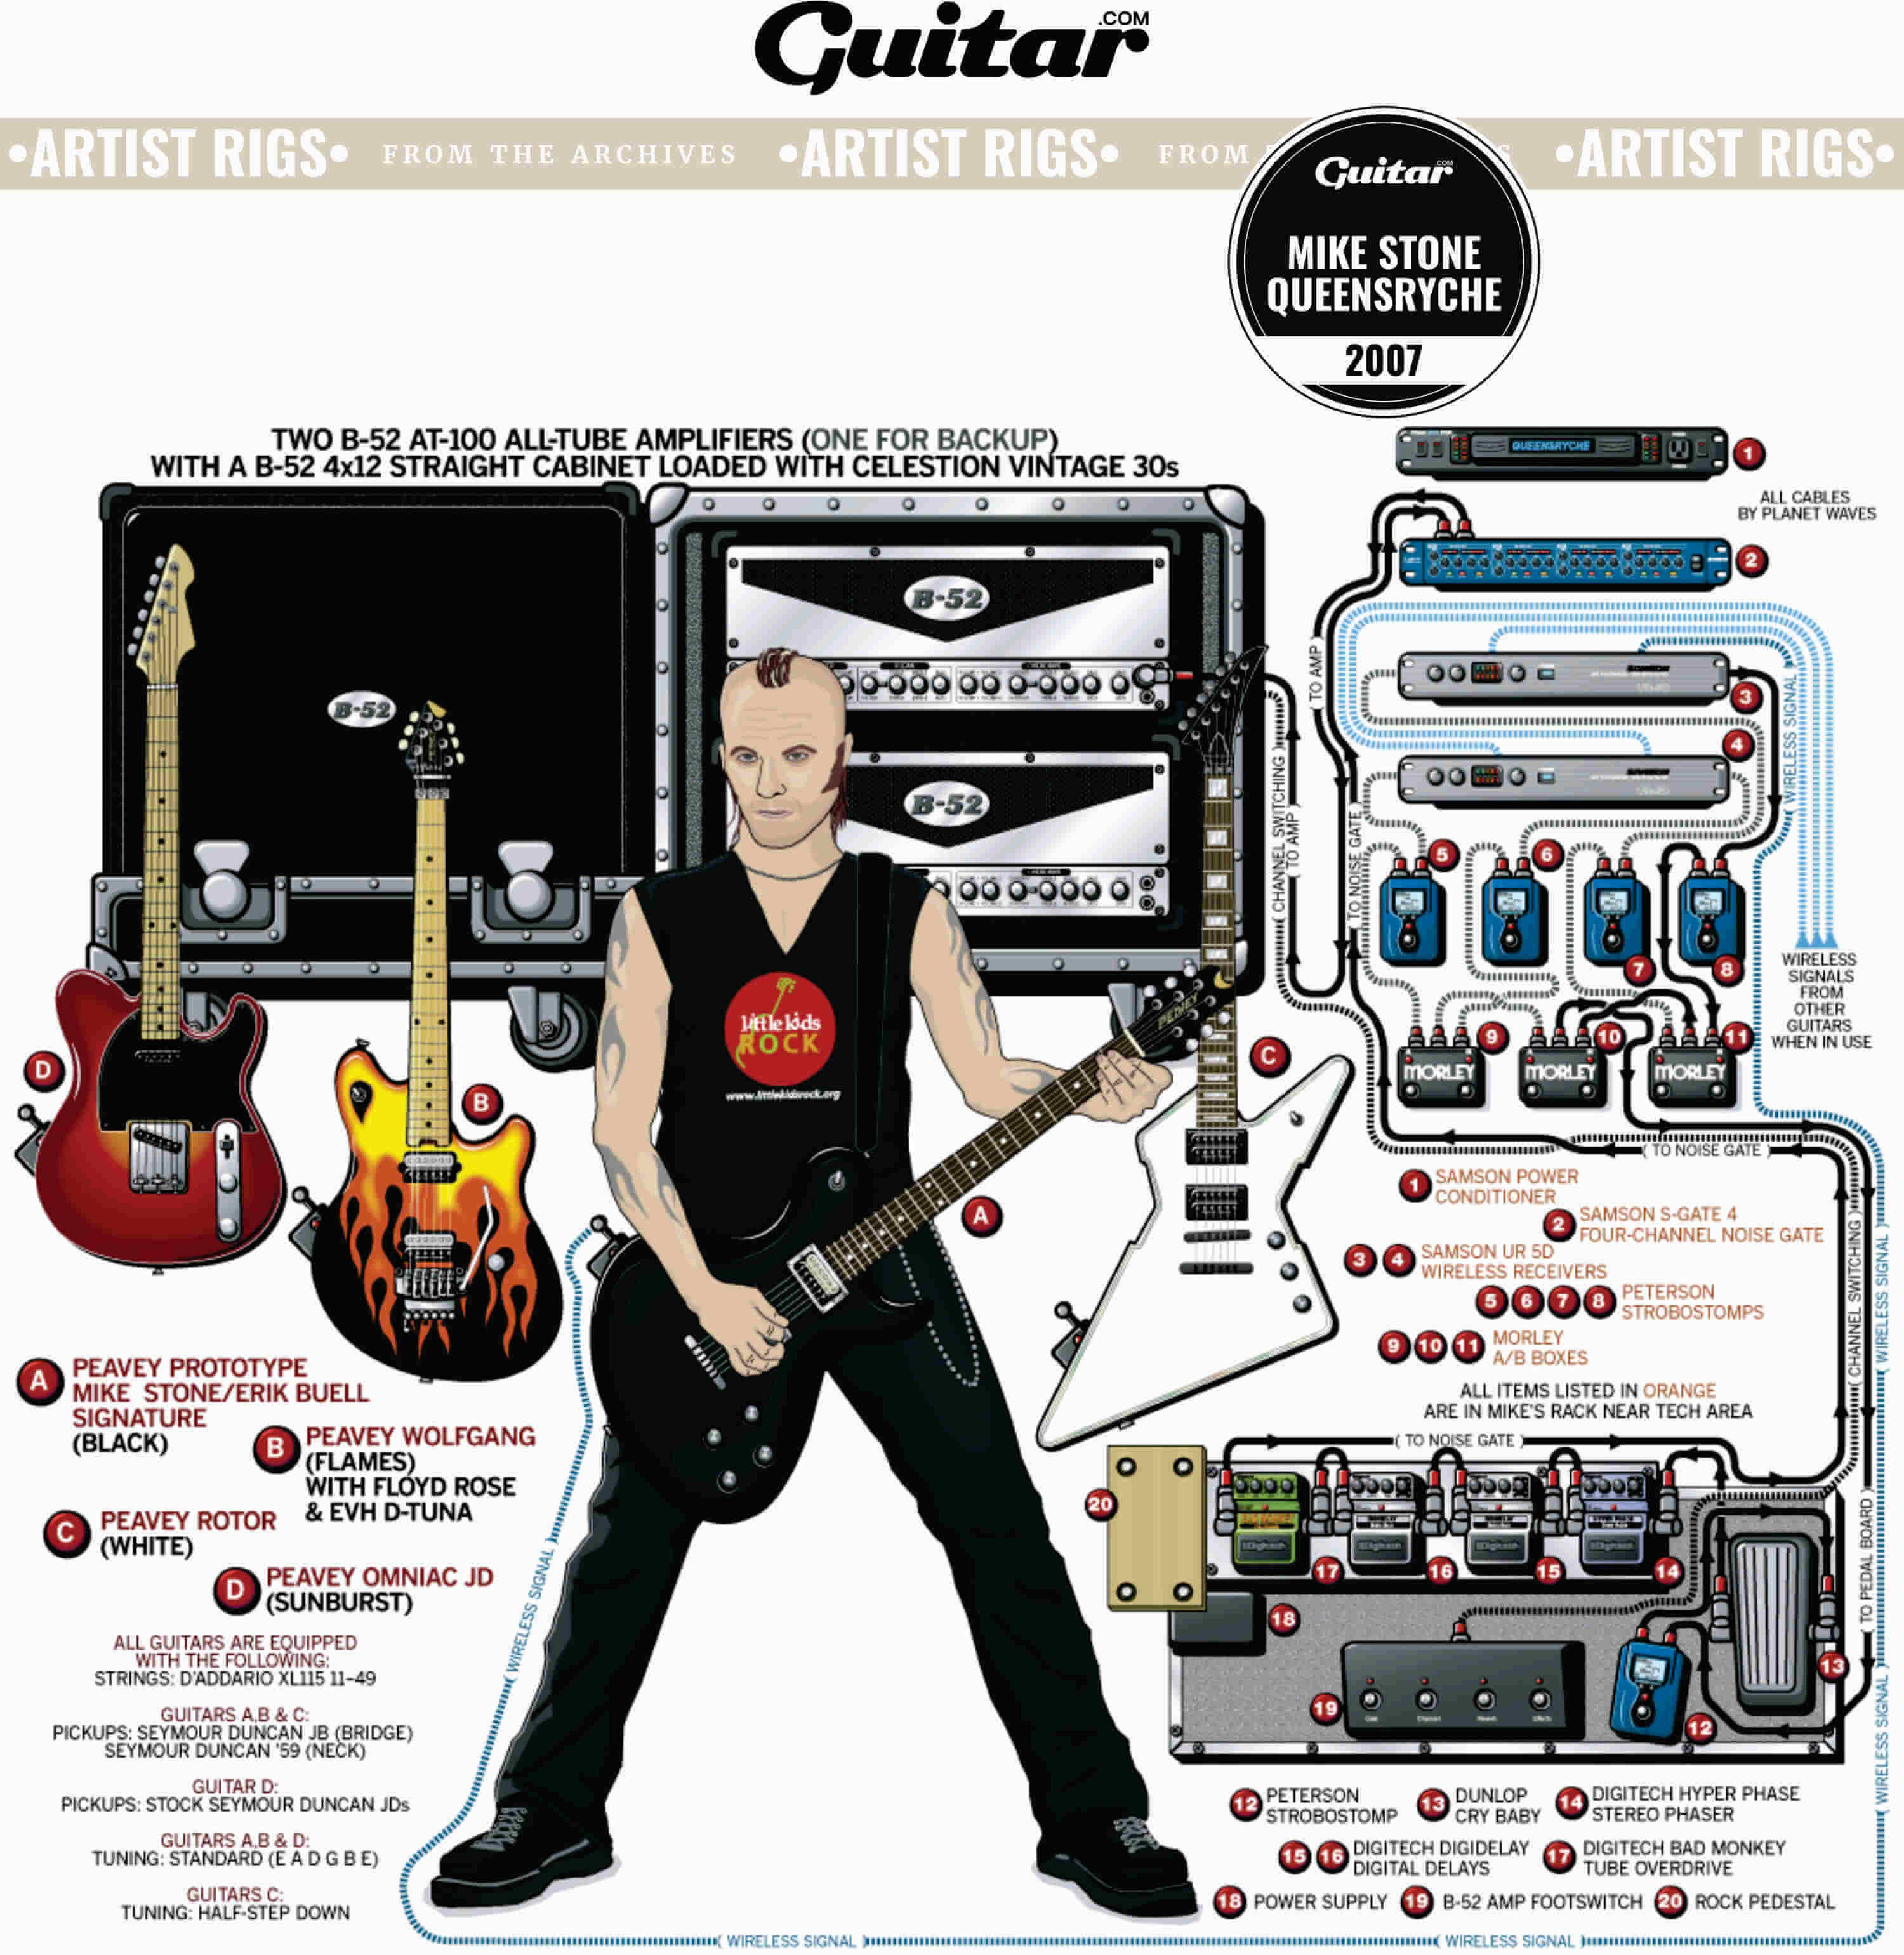 Rig Diagram: Mike Stone, Queensryche (2007)